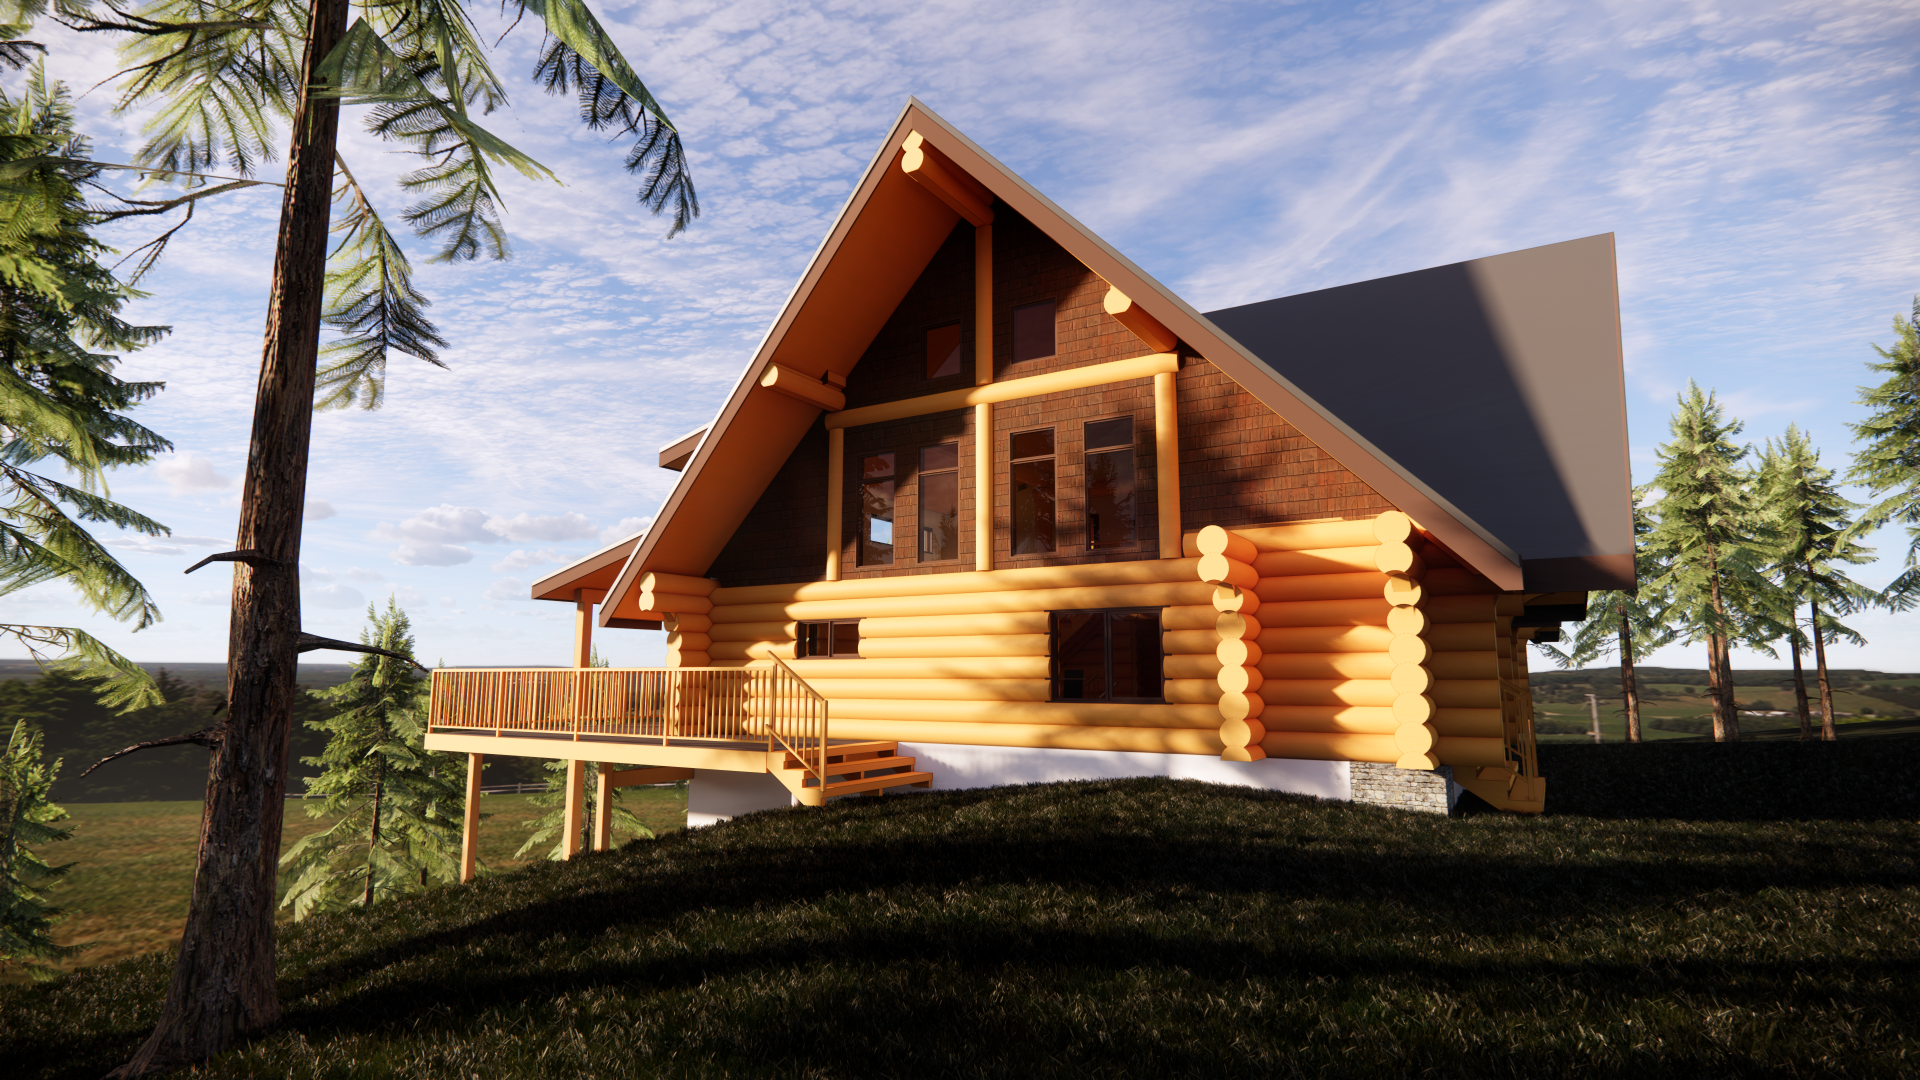 Render Wednesday! Here's a log home we have been working on the last while. The existing home was disassembled in the Fraser Valley and moved to Kamloops. #procaddesigns #renderwednesday #loghome #ranch #instahome #render #virtual #design #houseplans #realestate